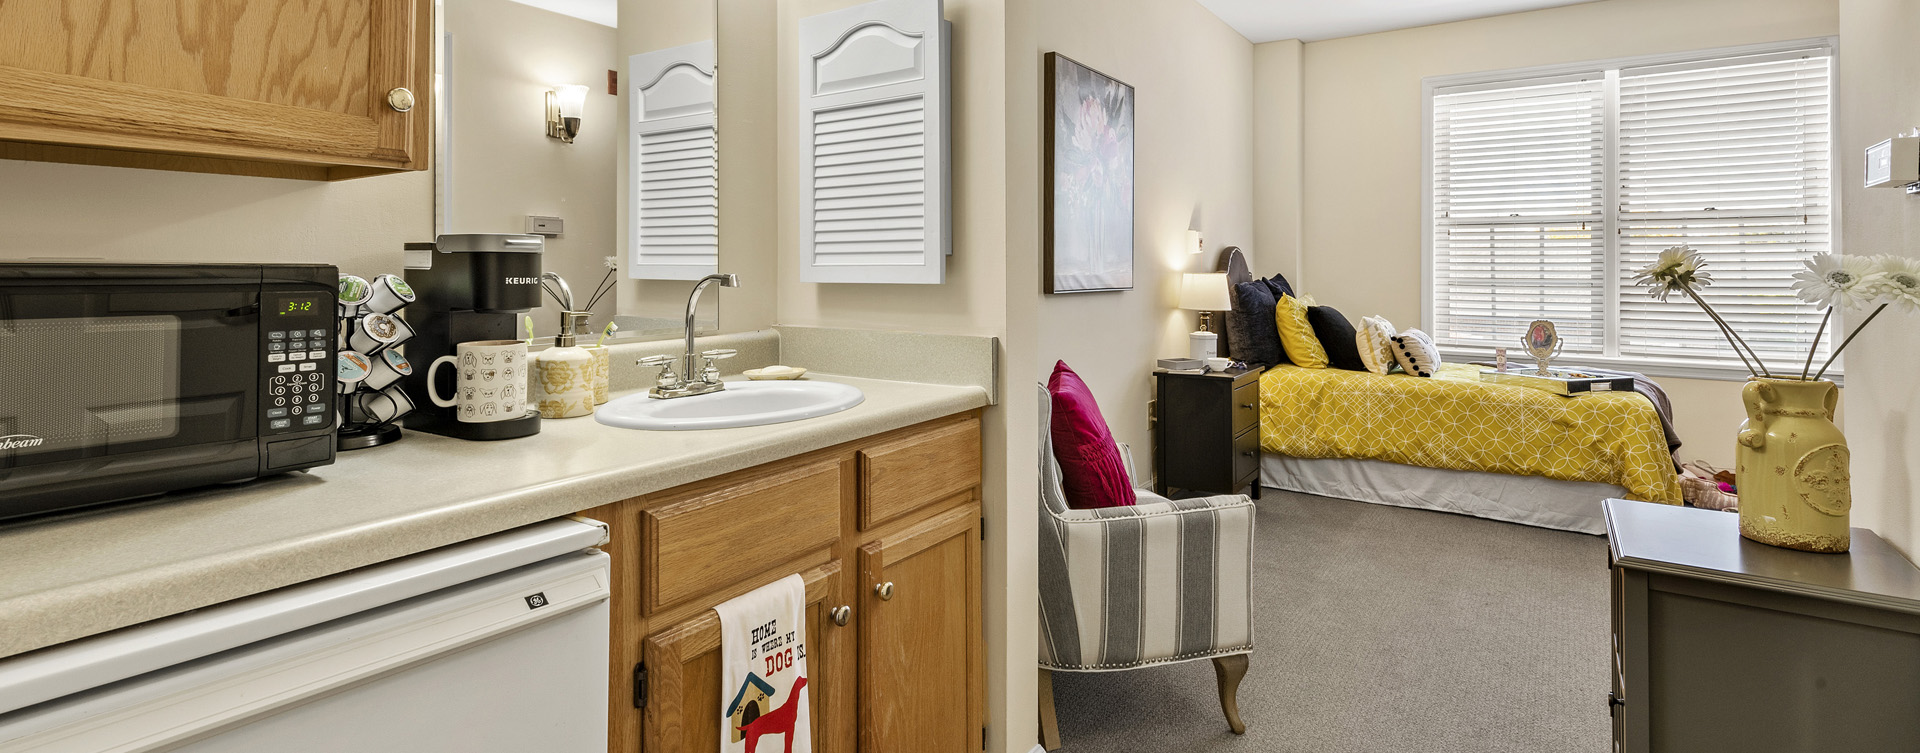 Enjoy senior friendly amenities, personal climate control and security in an apartment at Bickford of Worthington